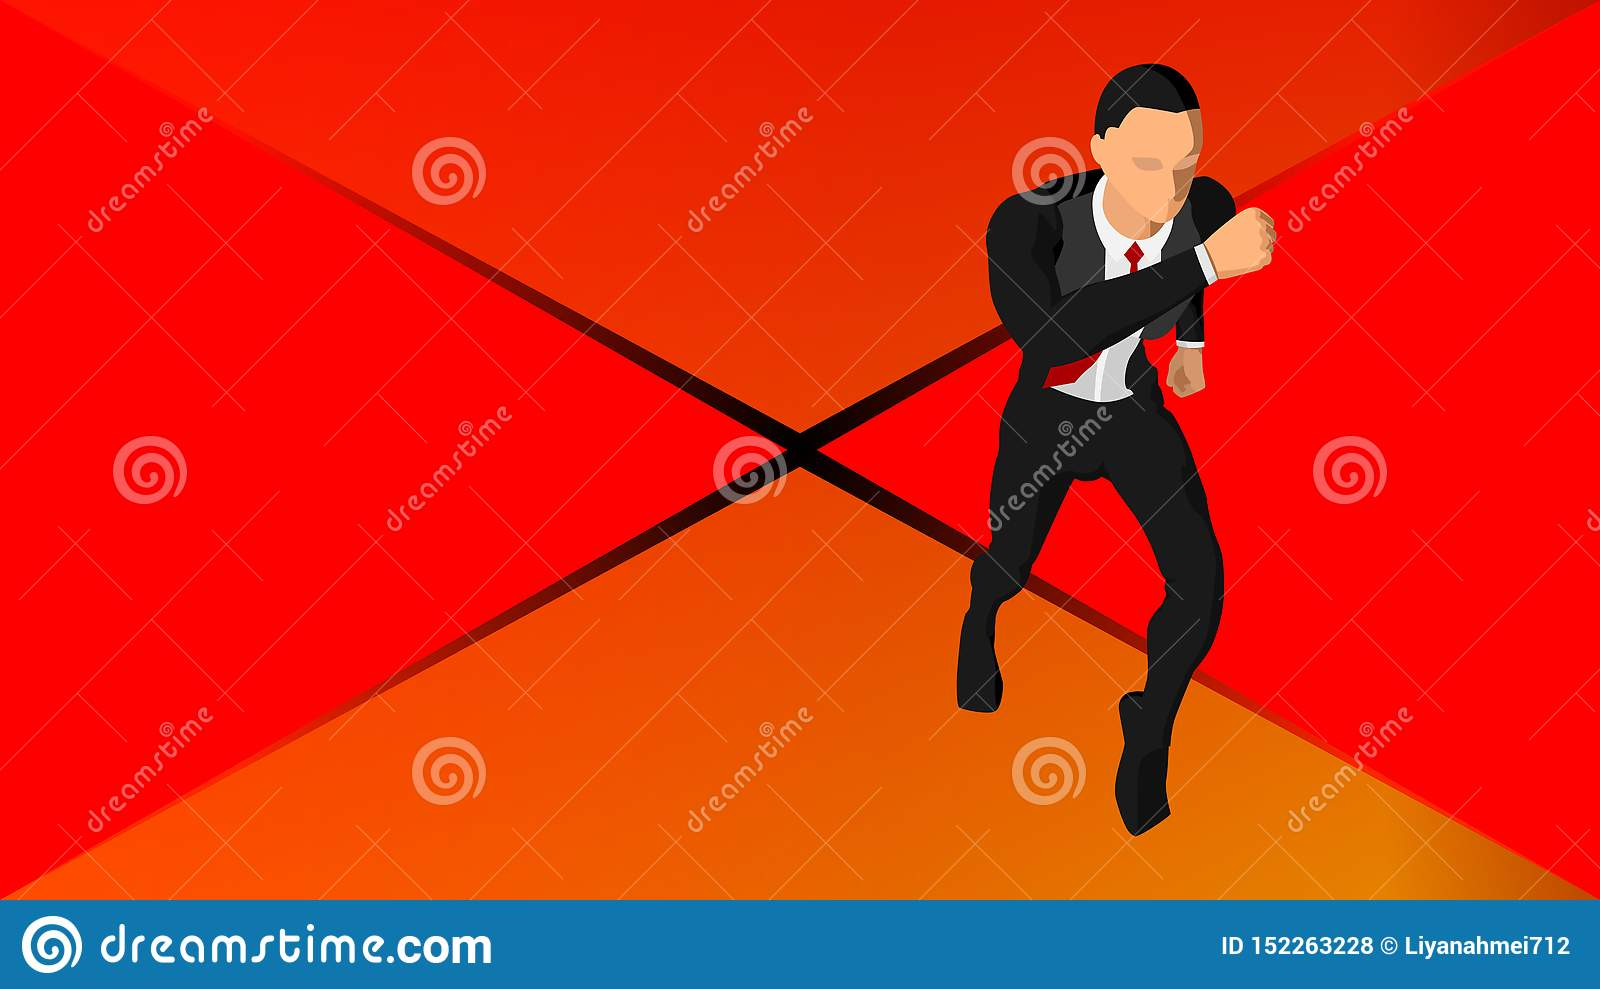 Background with illustrations of a running businessman. Eps 10